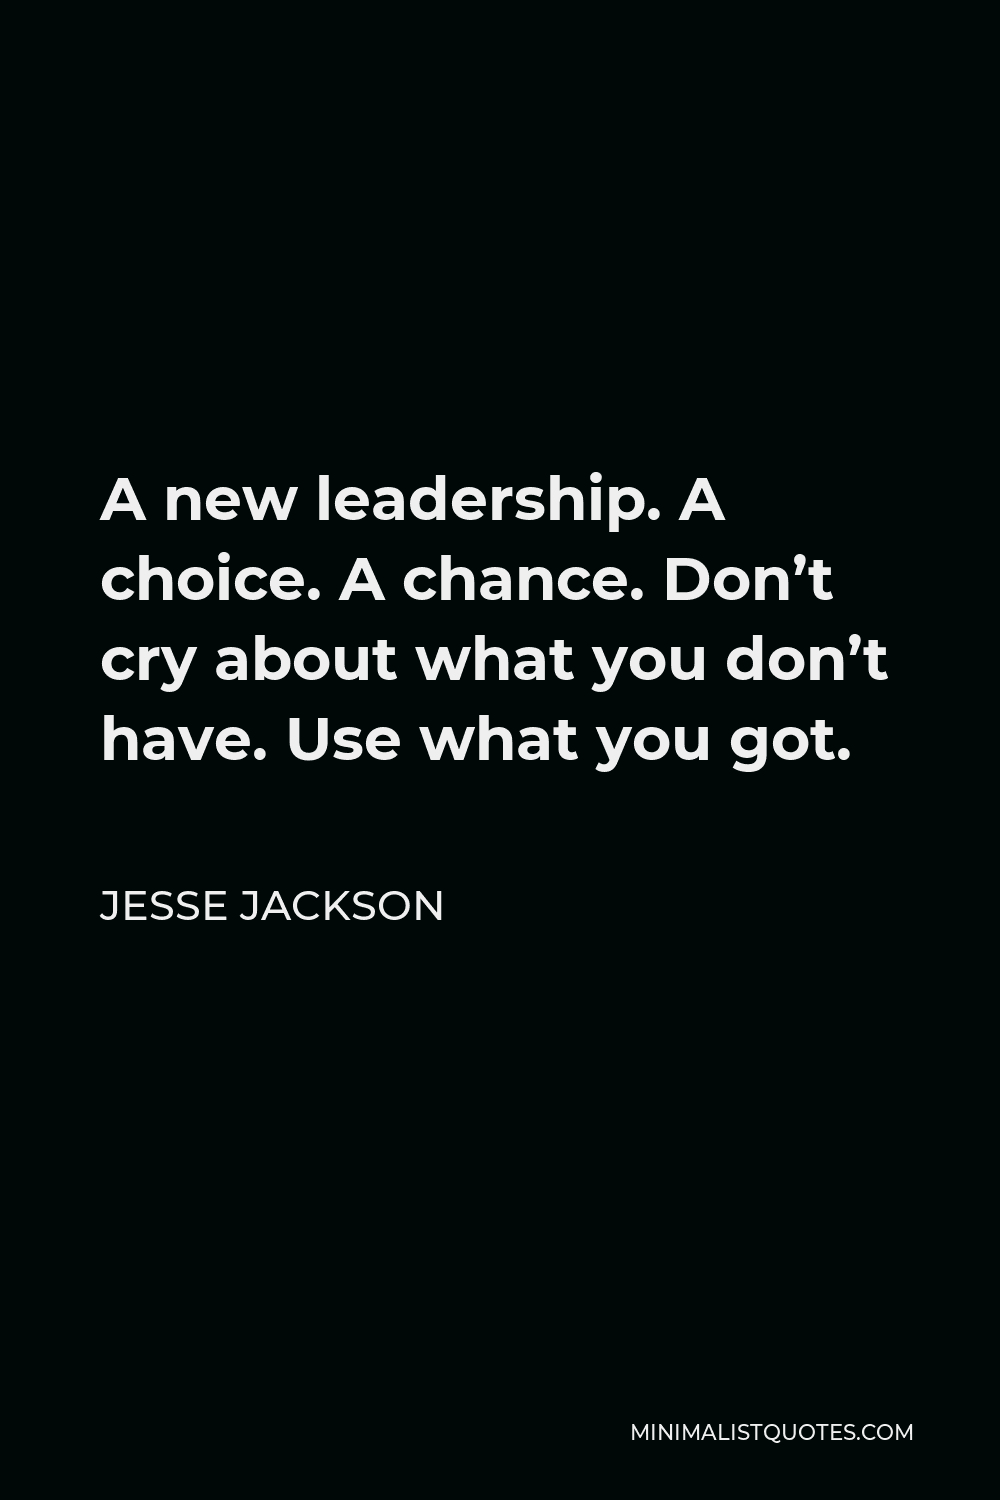 Jesse Jackson Quote - A new leadership. A choice. A chance. Don't cry about what you don't have. Use what you got.